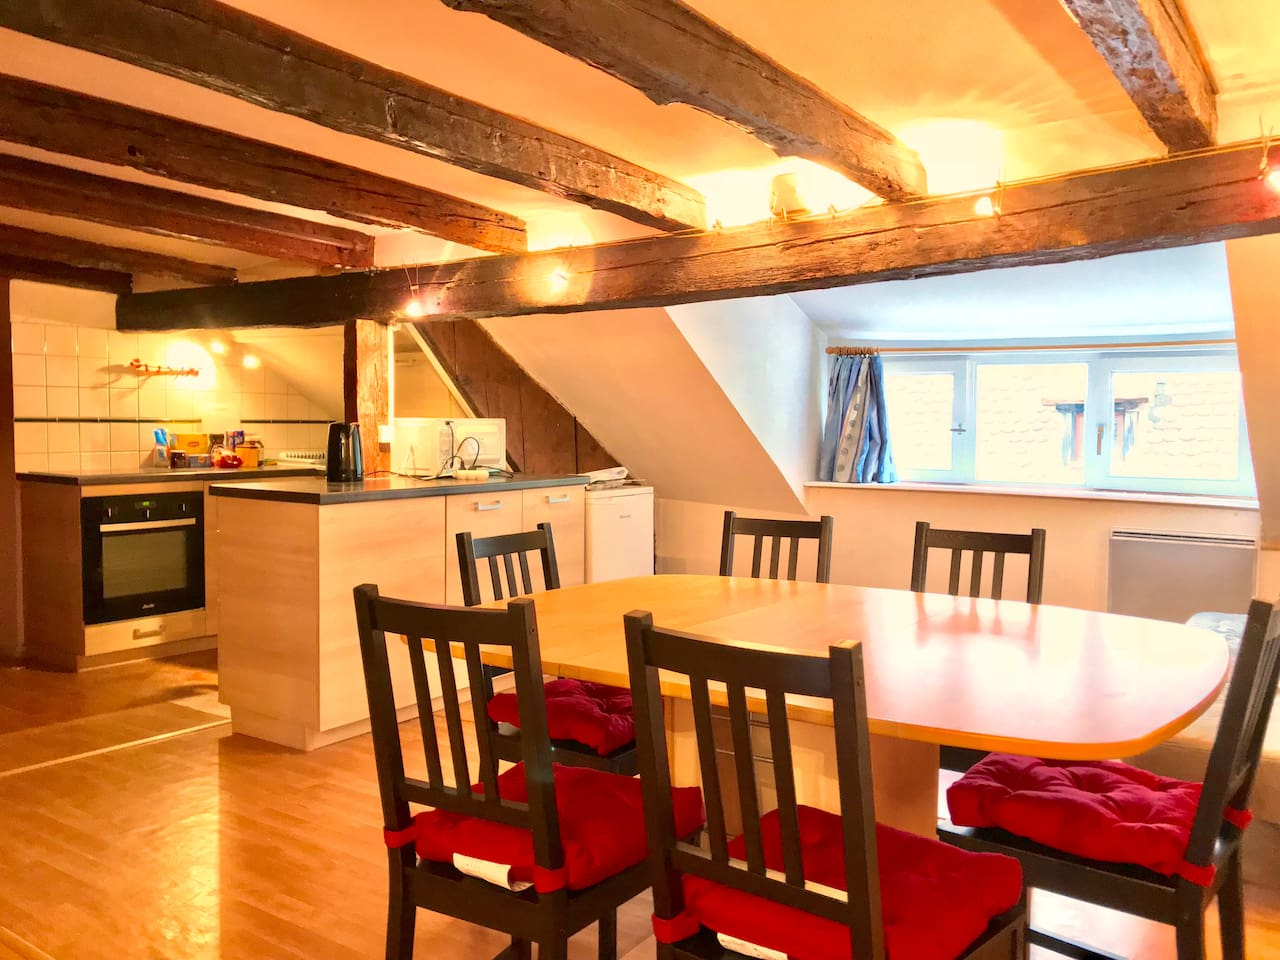 Welcome to my beautiful cabin-like duplex in the heart of Strasbourg's historic center! :)